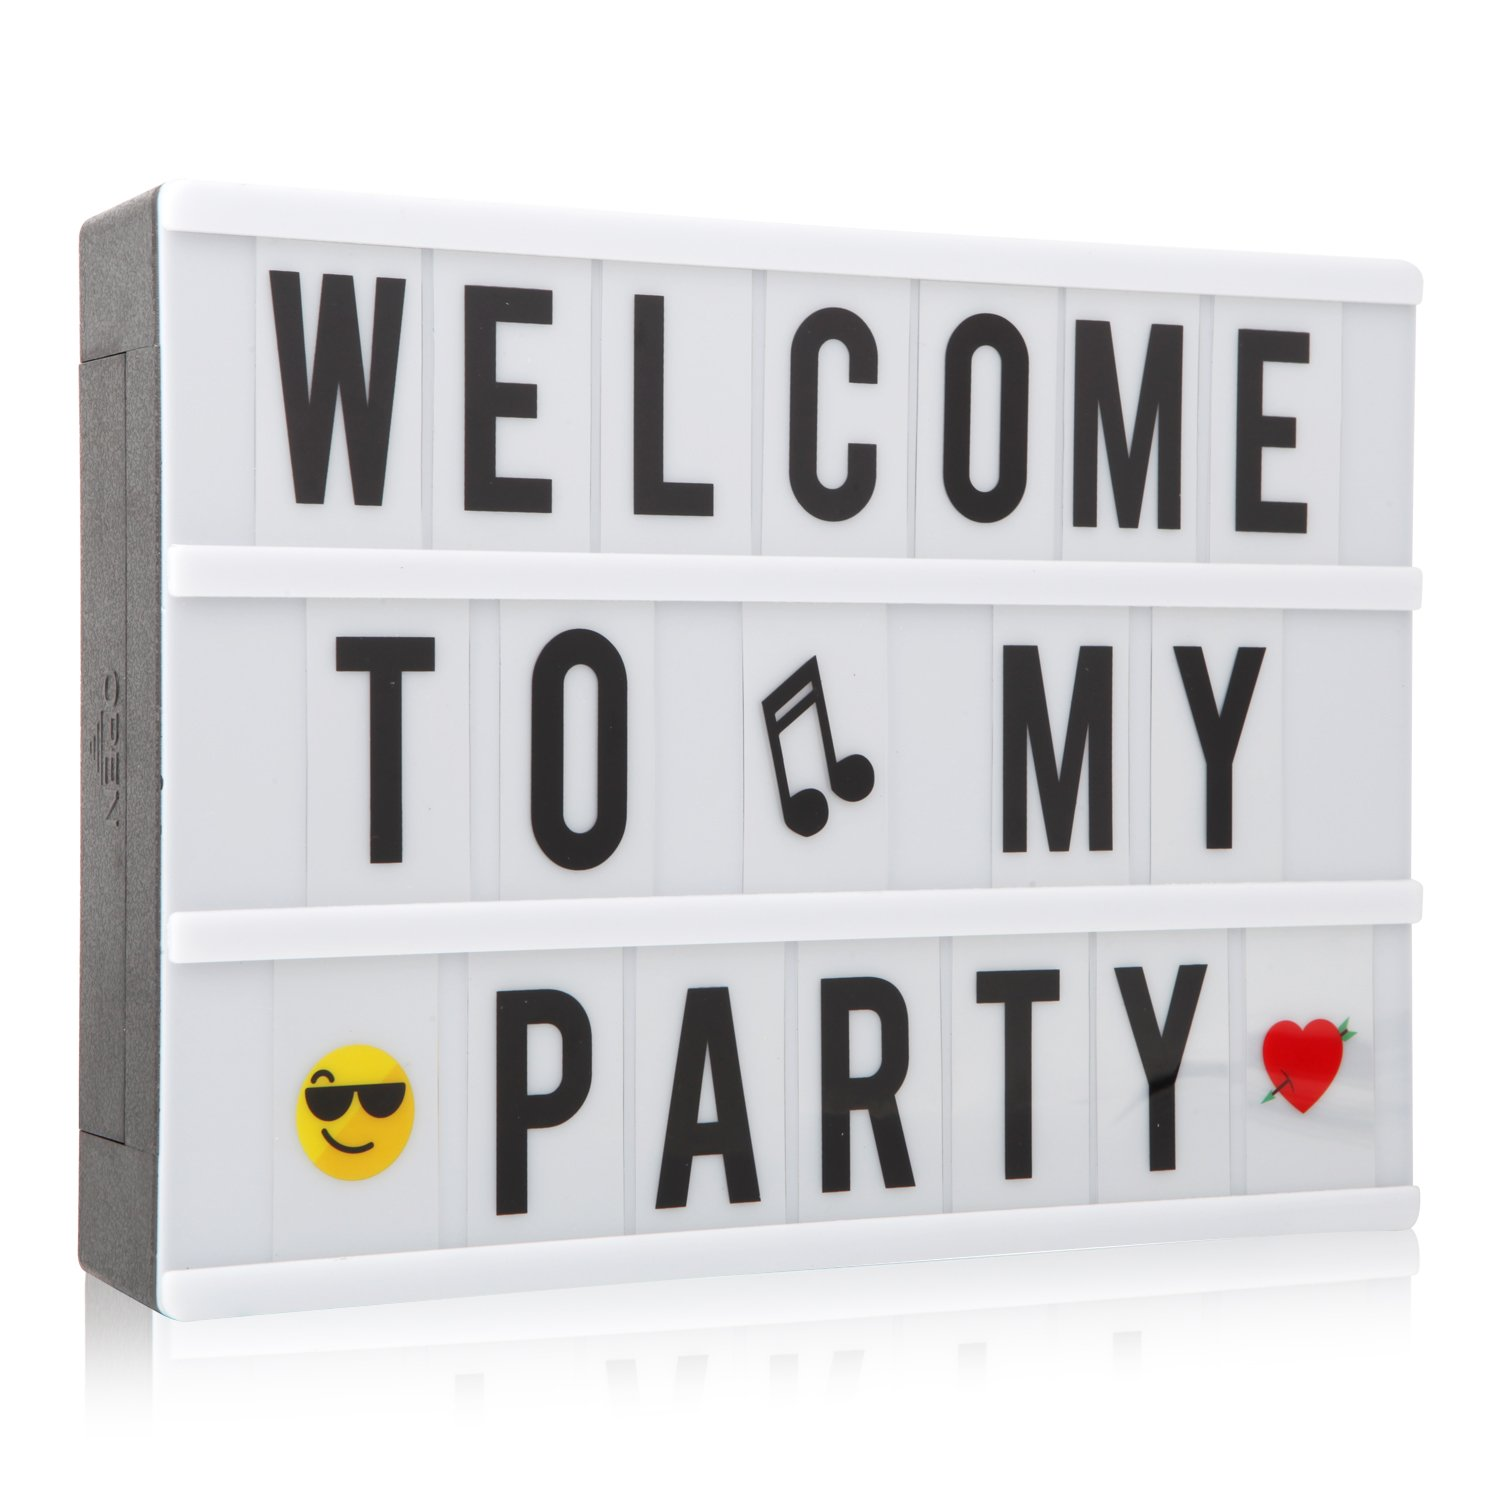 A4 LED Light up Box Sign Cinematic Message Letter Box NXENTC Plastic Cinema Sign with 120 Characters Numbers and Emojis